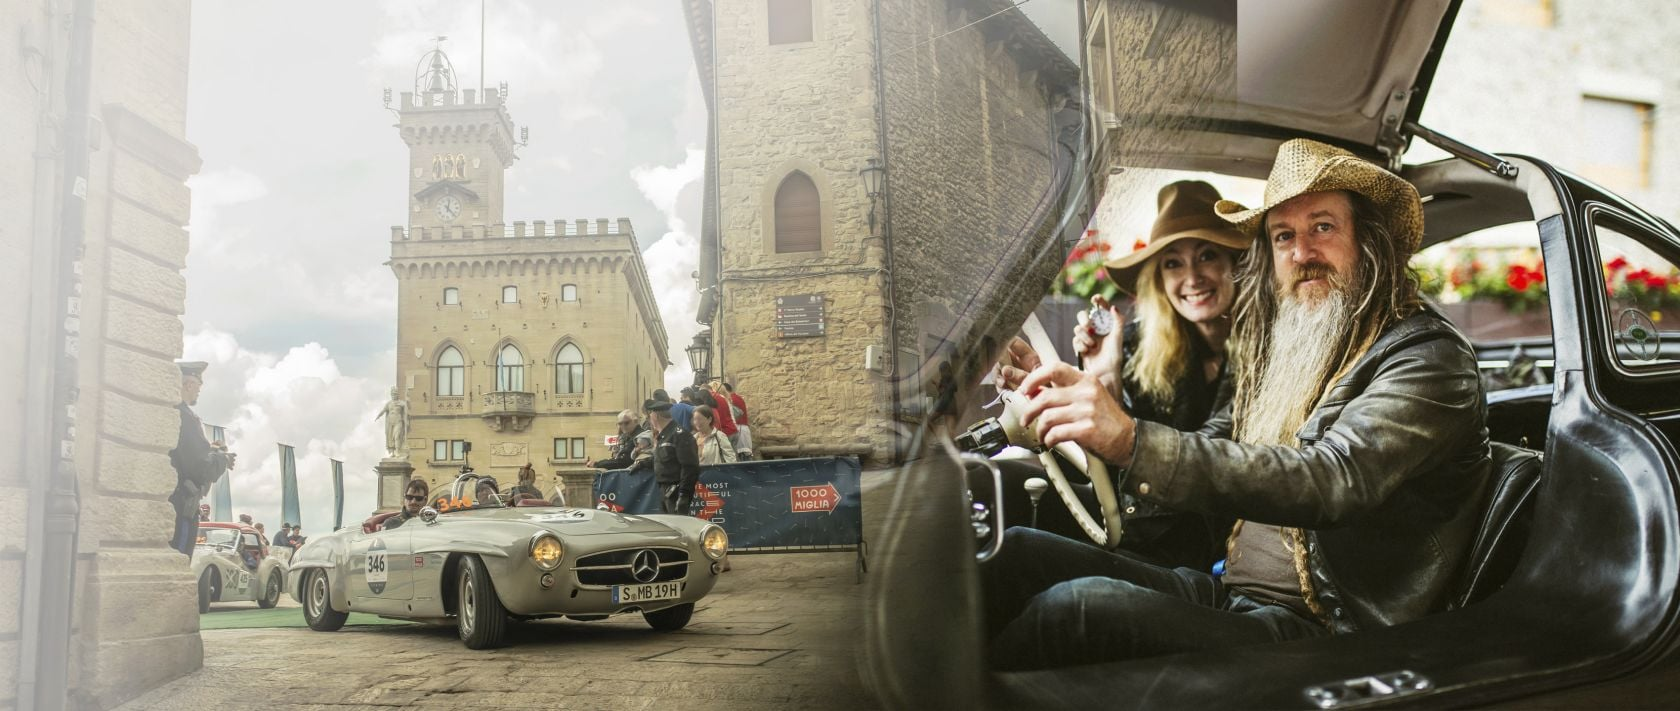 "Mercedes-Benz celebrates ""125 Years of Motorsports"" in the classic Italian endurance competition Mille Miglia."